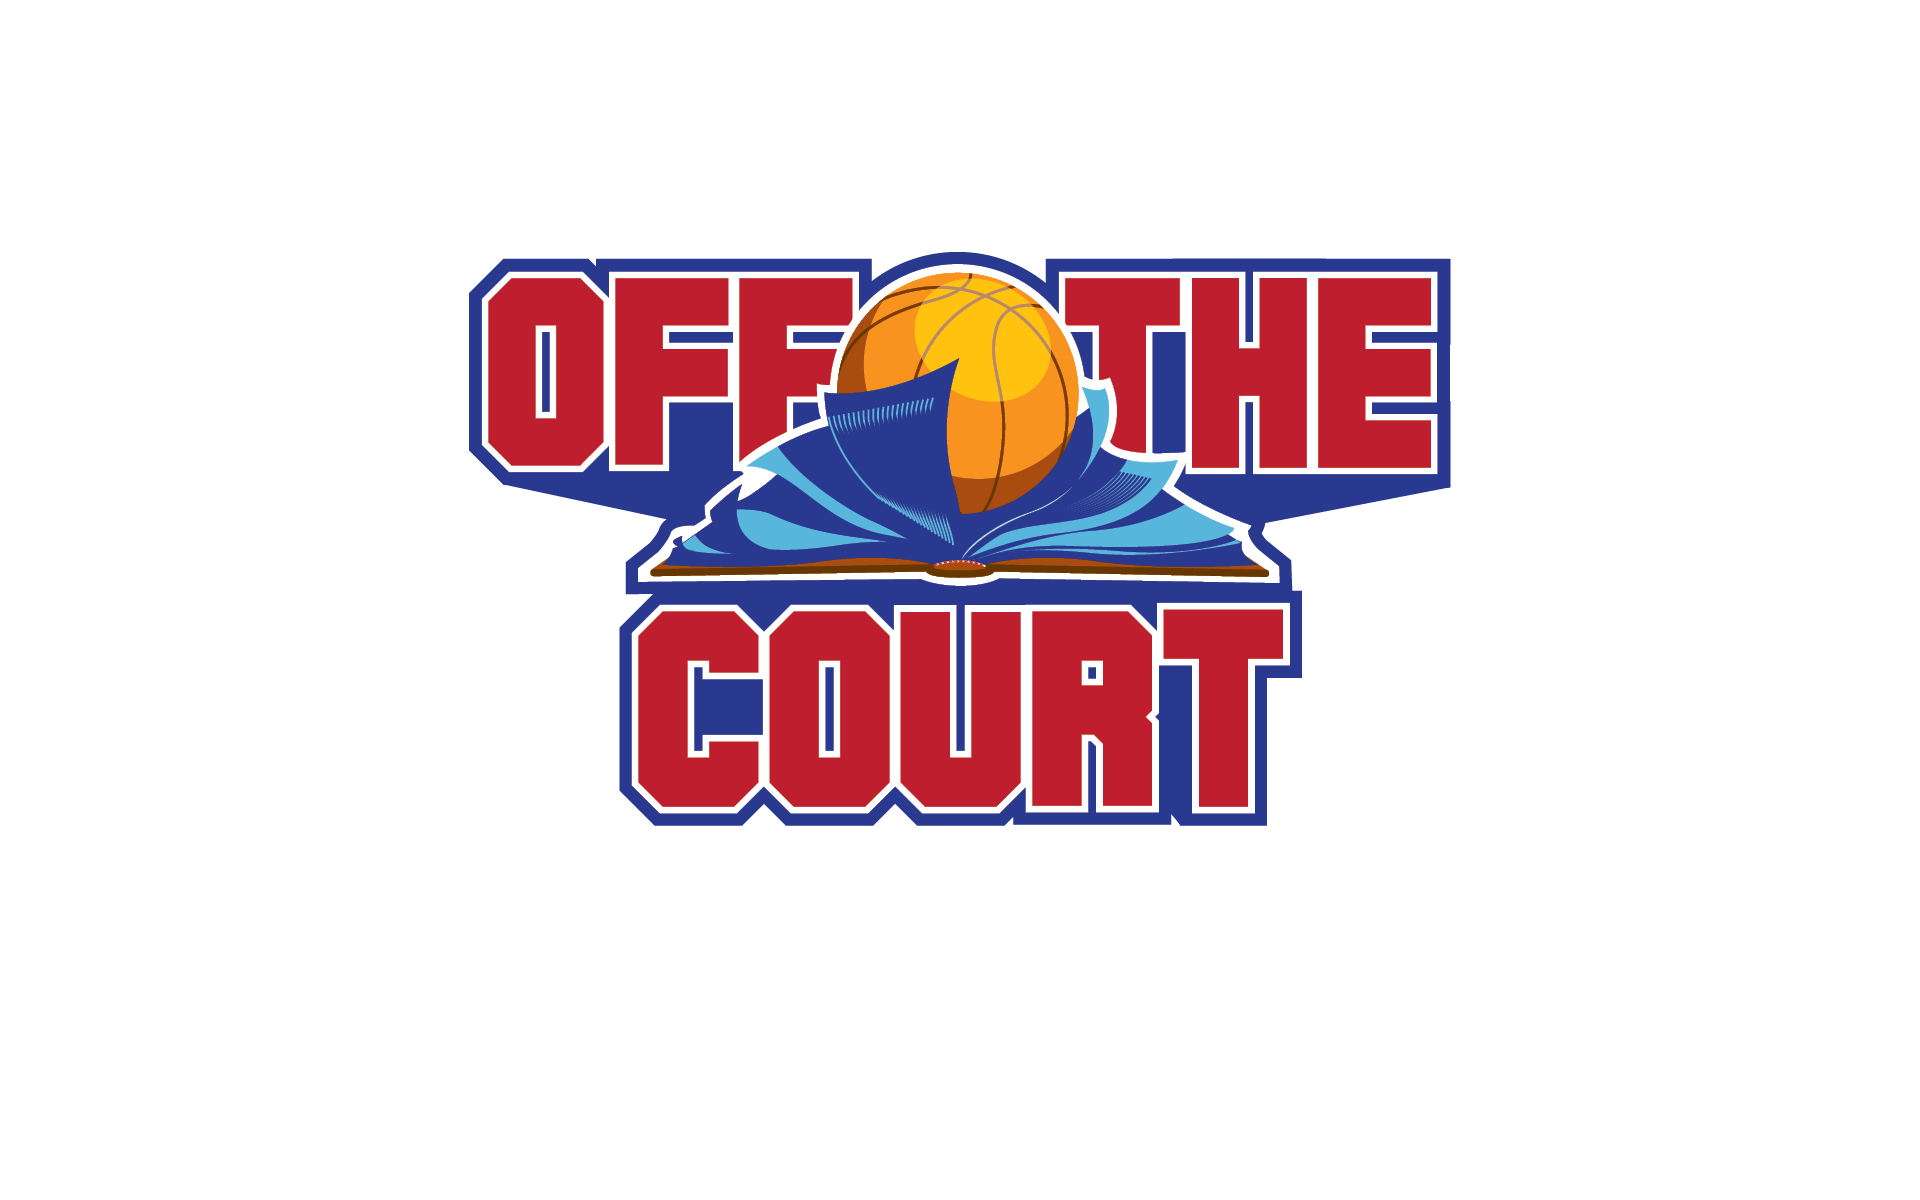 OFF THE COURT LOGO